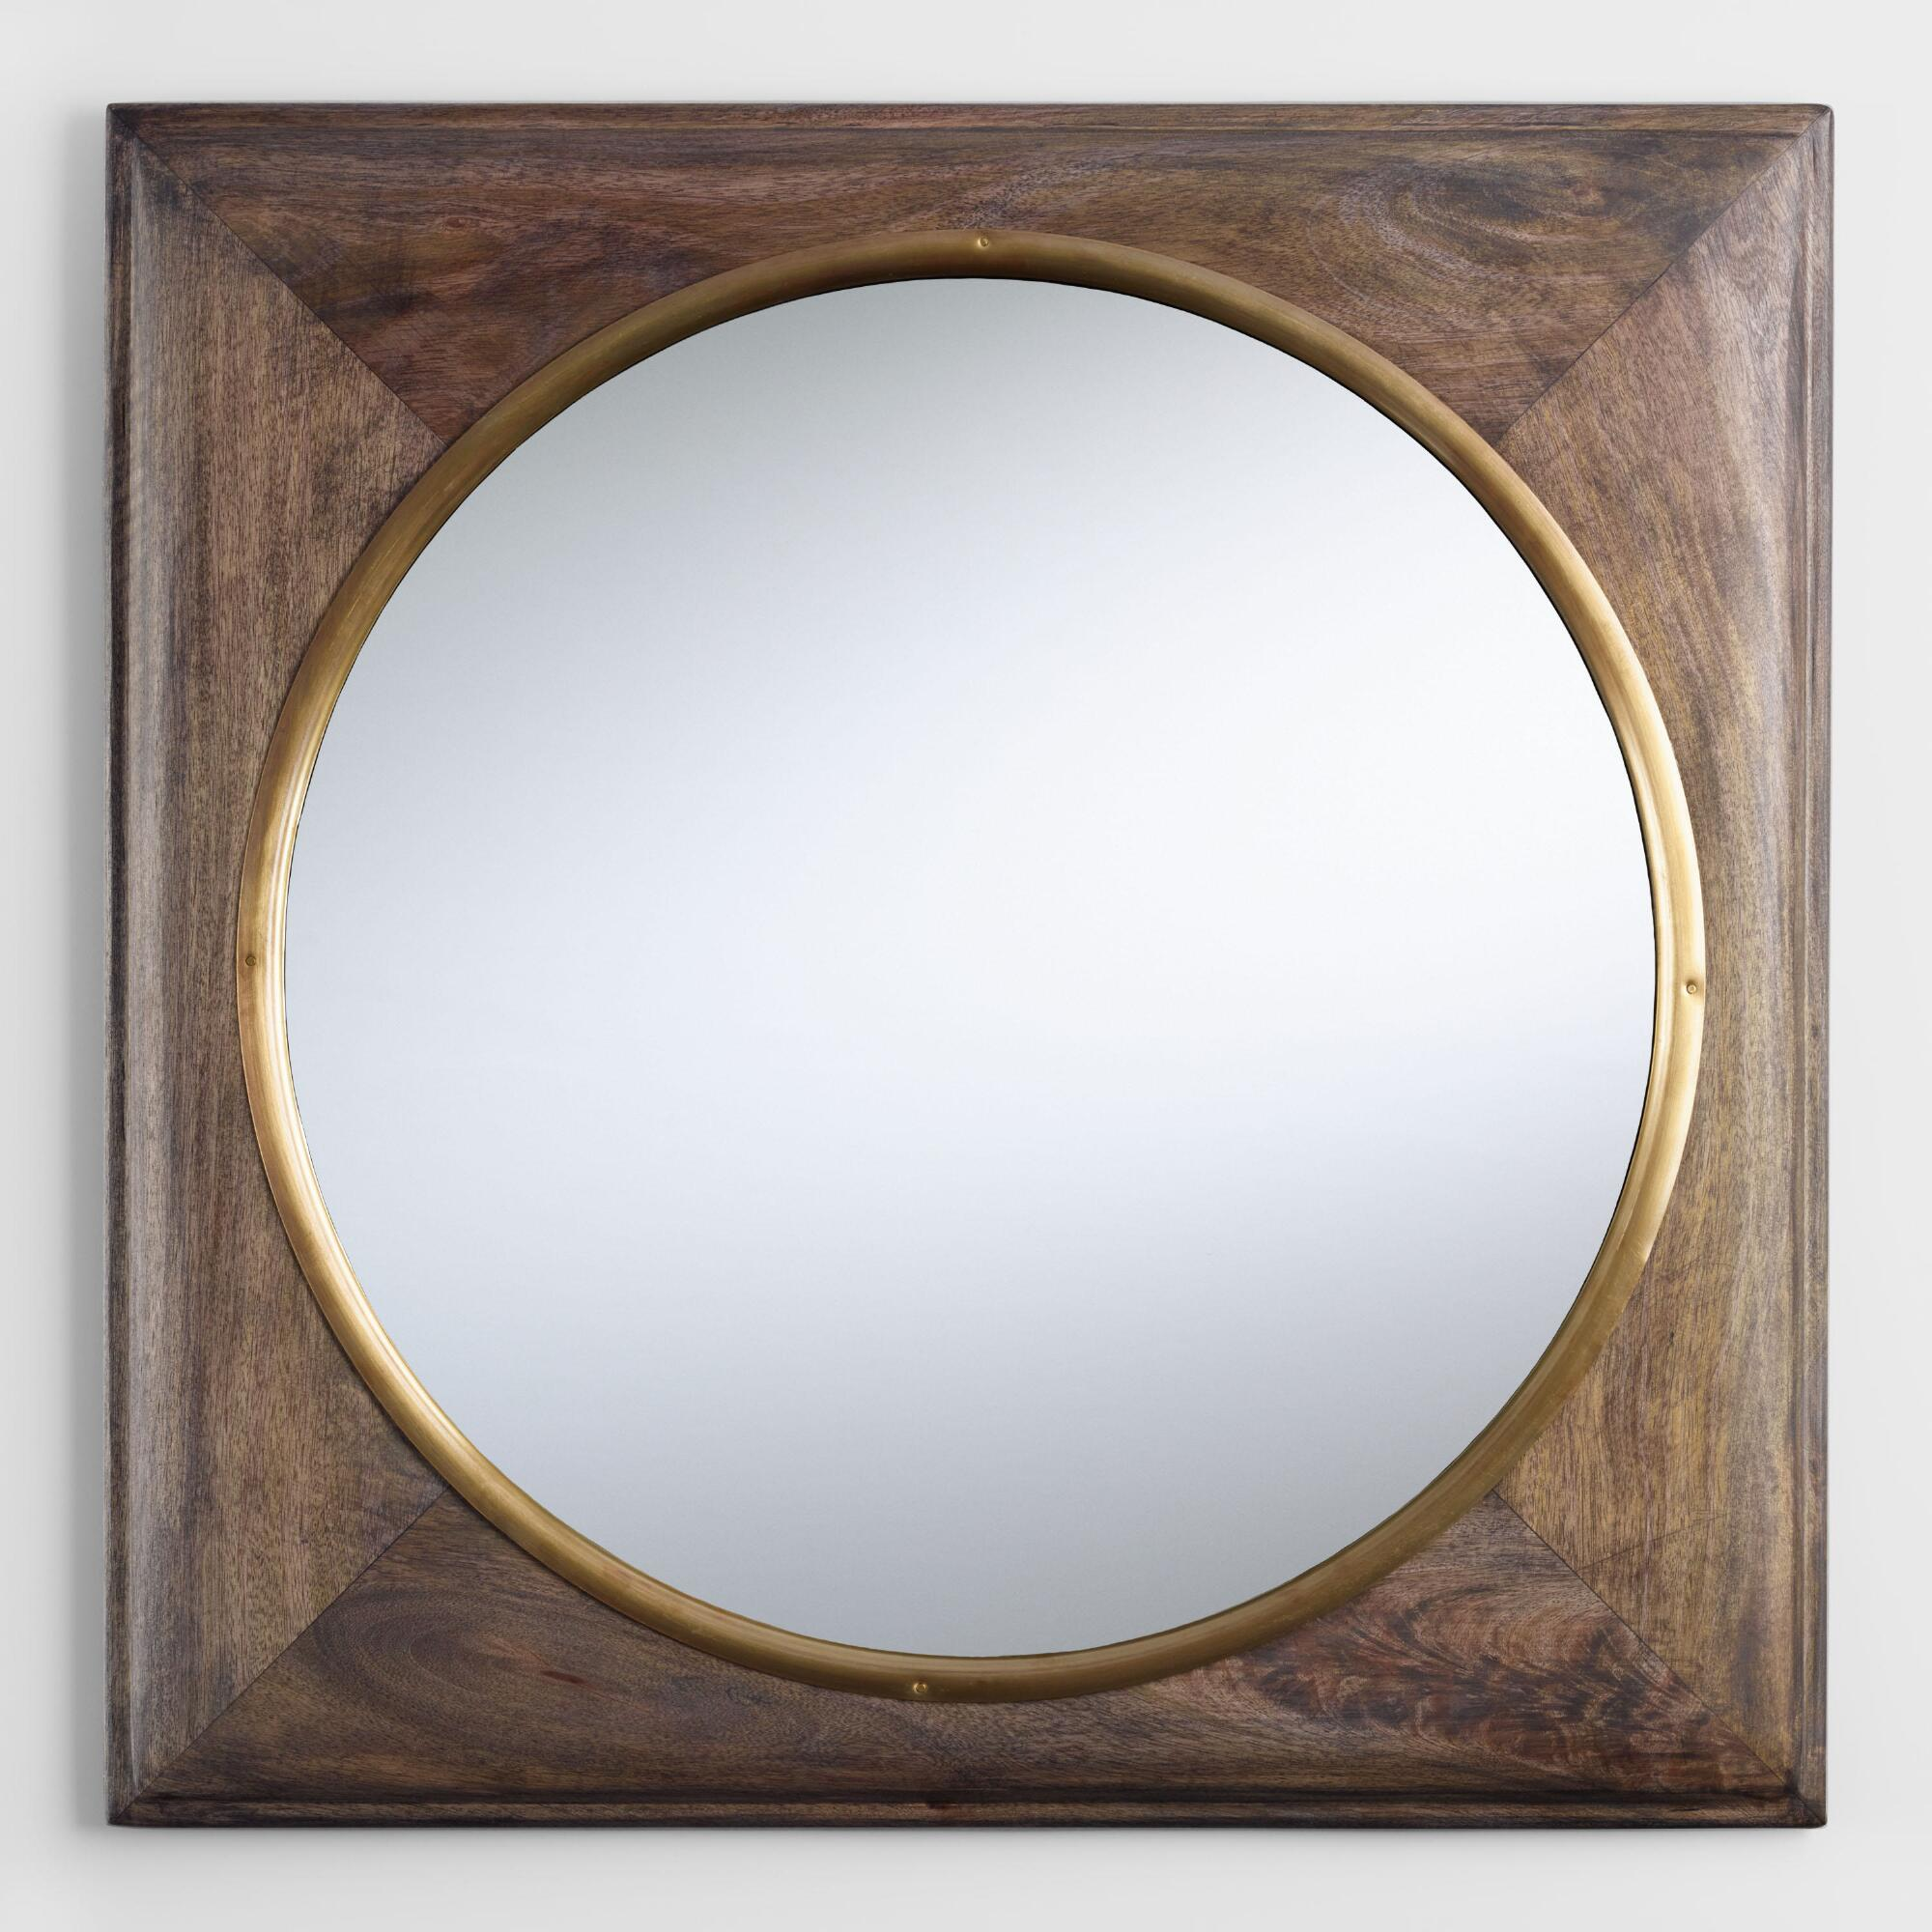 Brass and Wood Inset Wall Mirror: Brown by World Market